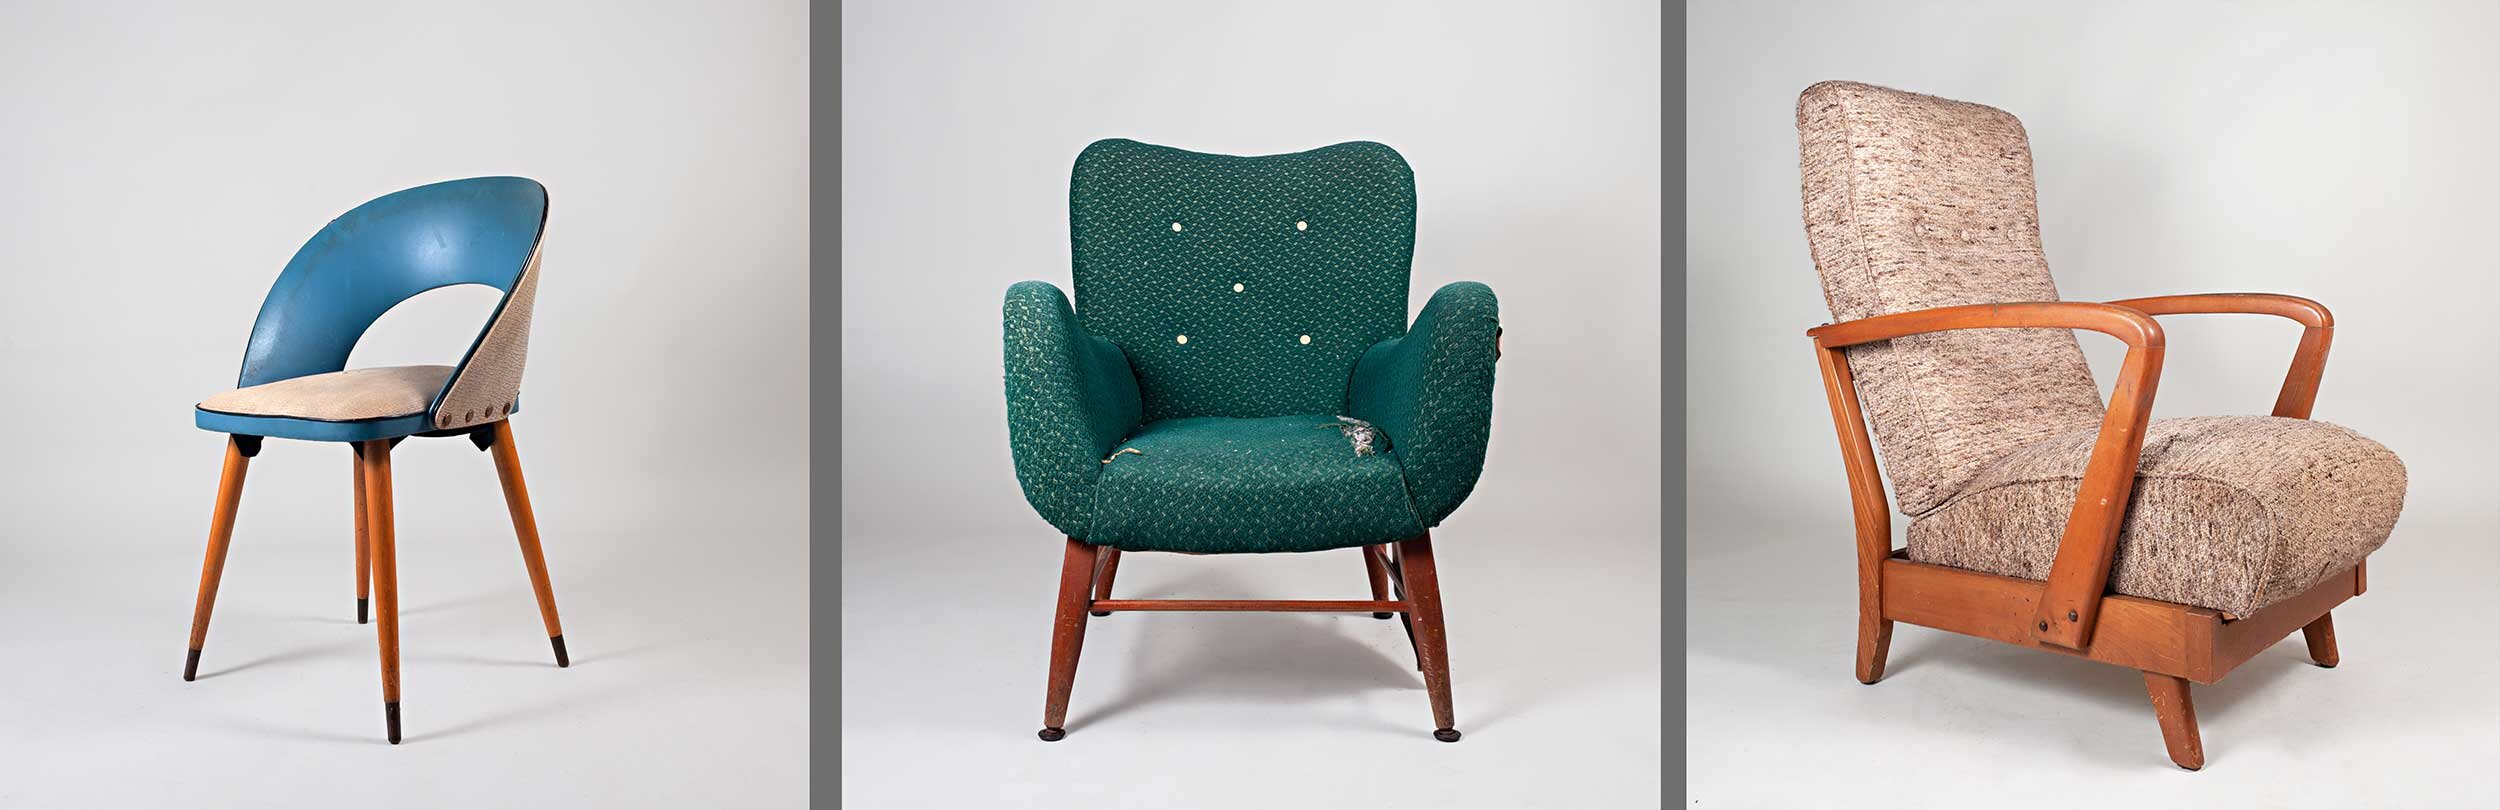 Featured from left to right:  1950's kitchen chair ,  1950's armchair  and  1950's recliner armchair  (one of two)